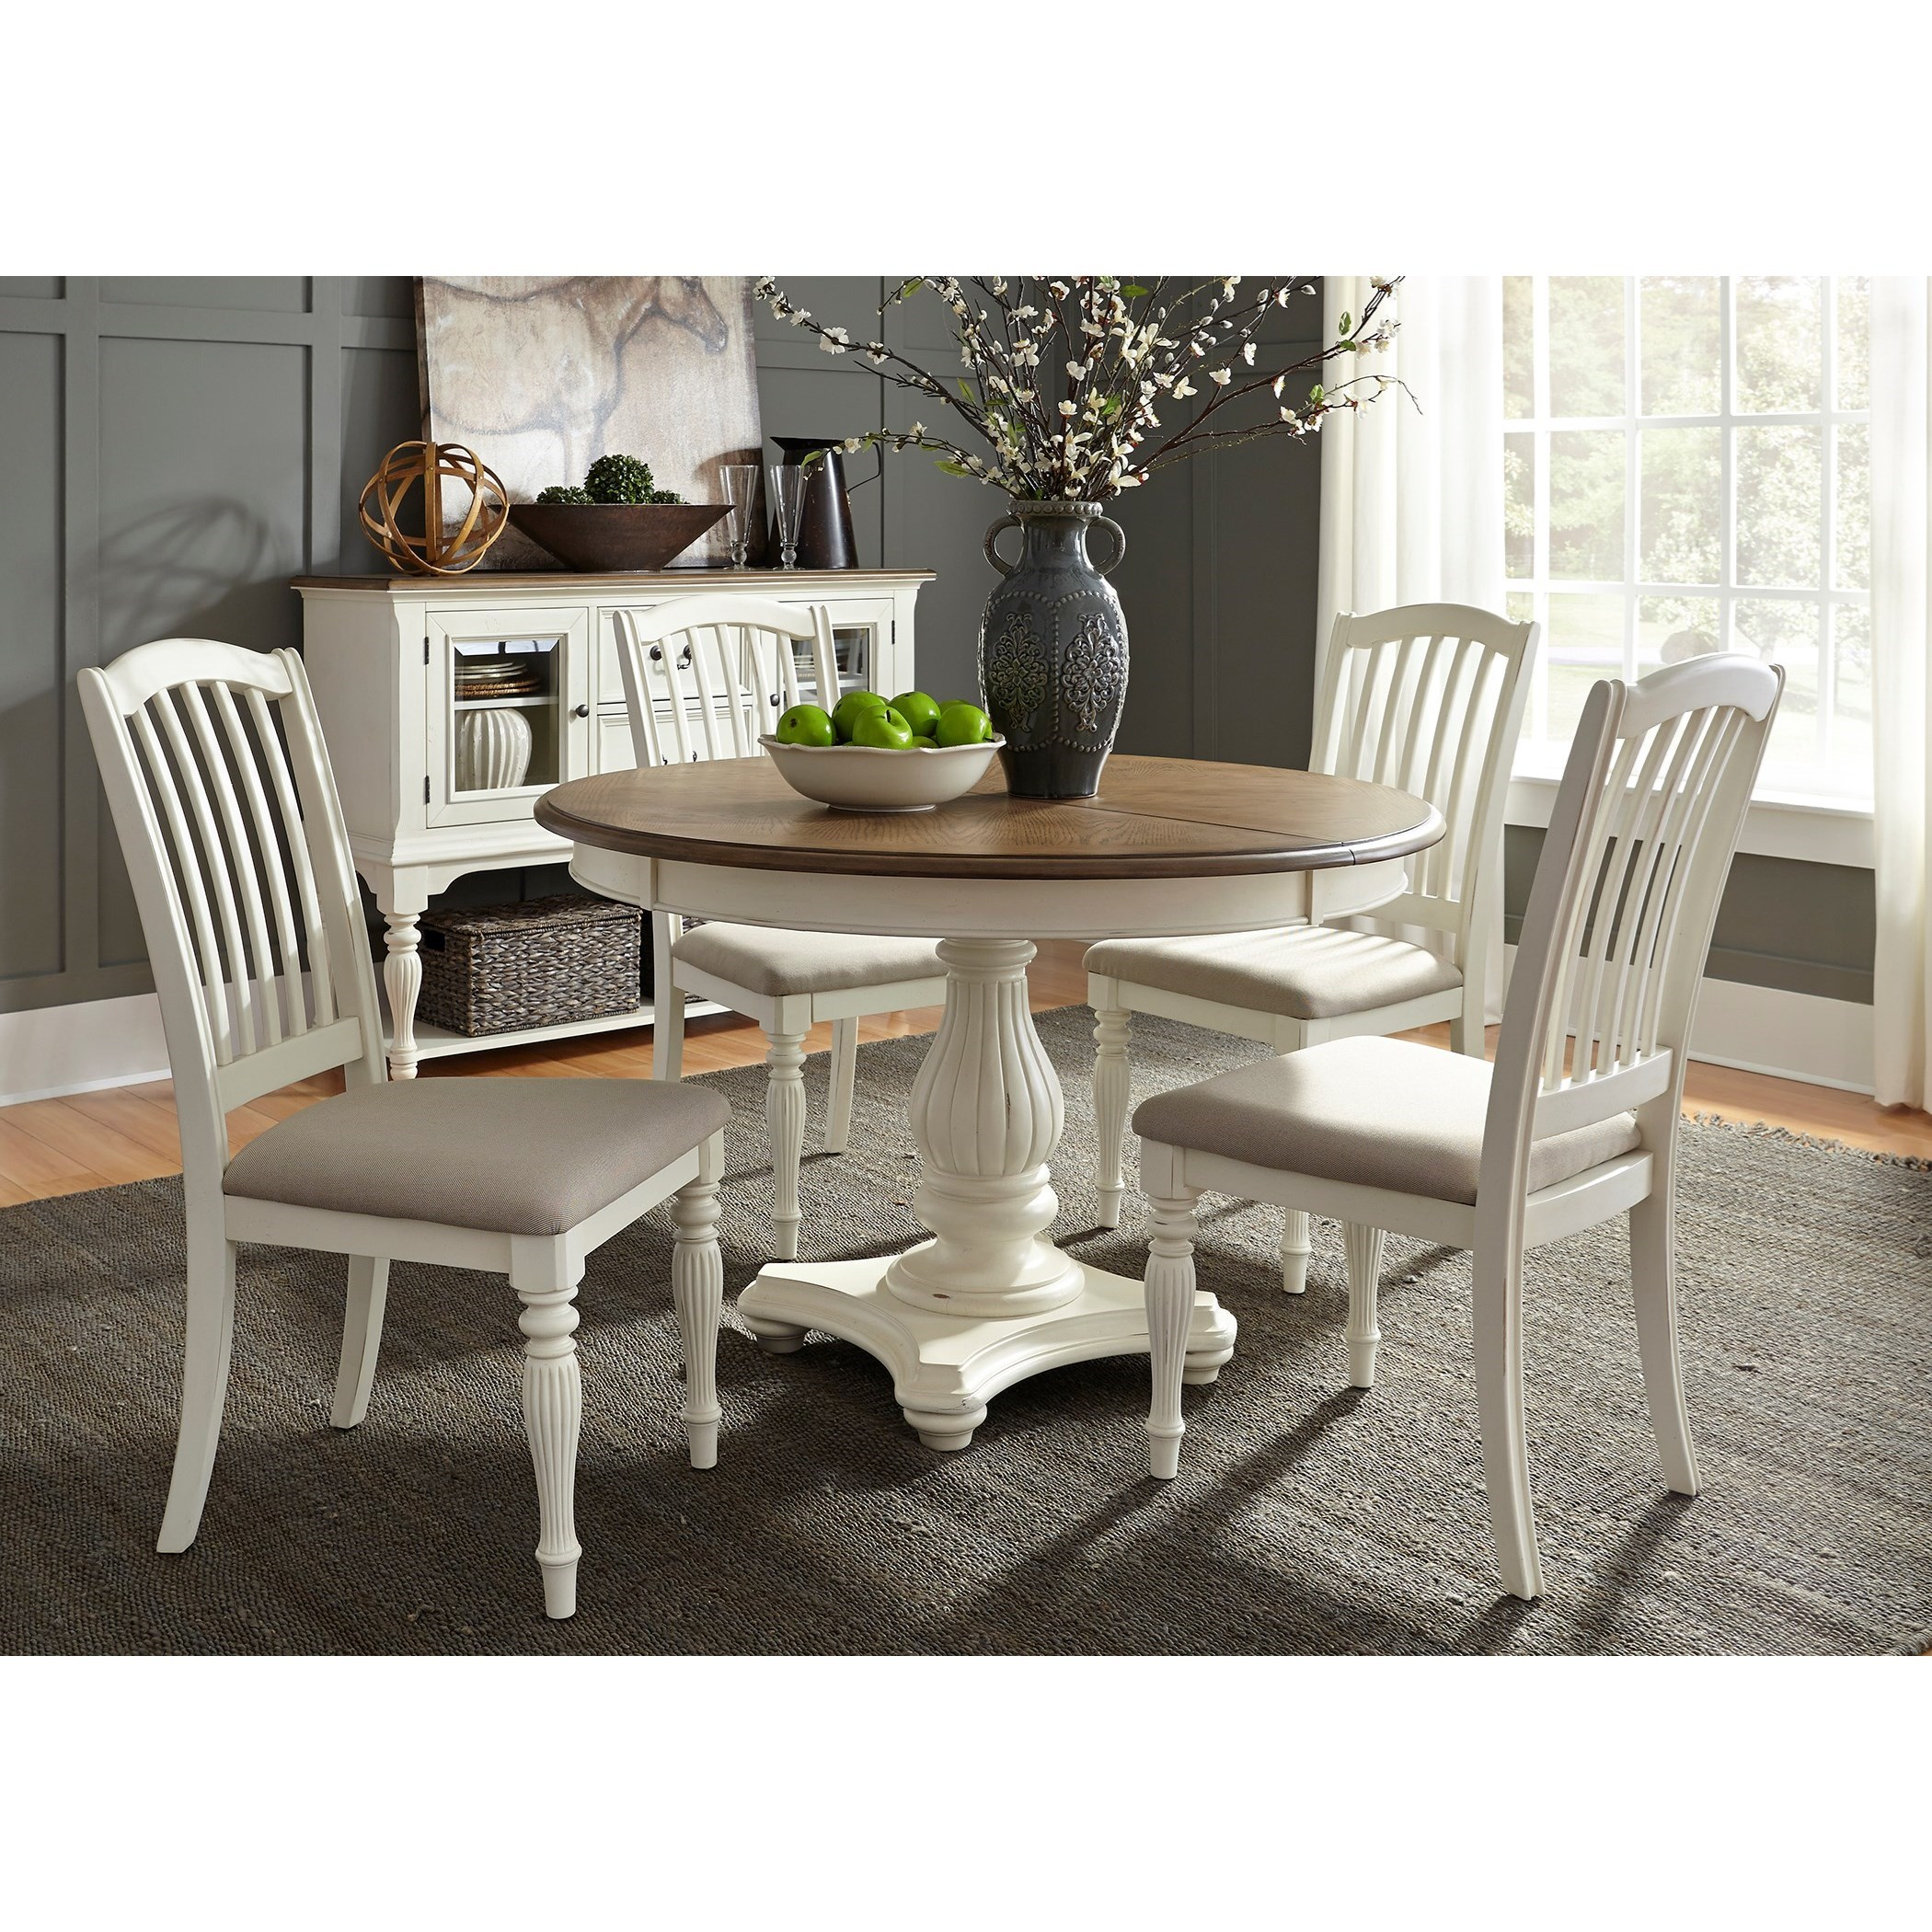 Liberty Furniture Cumberland Creek Dining 5 Piece Pedestal Table Set  - Item Number: 334-CD-5PDS